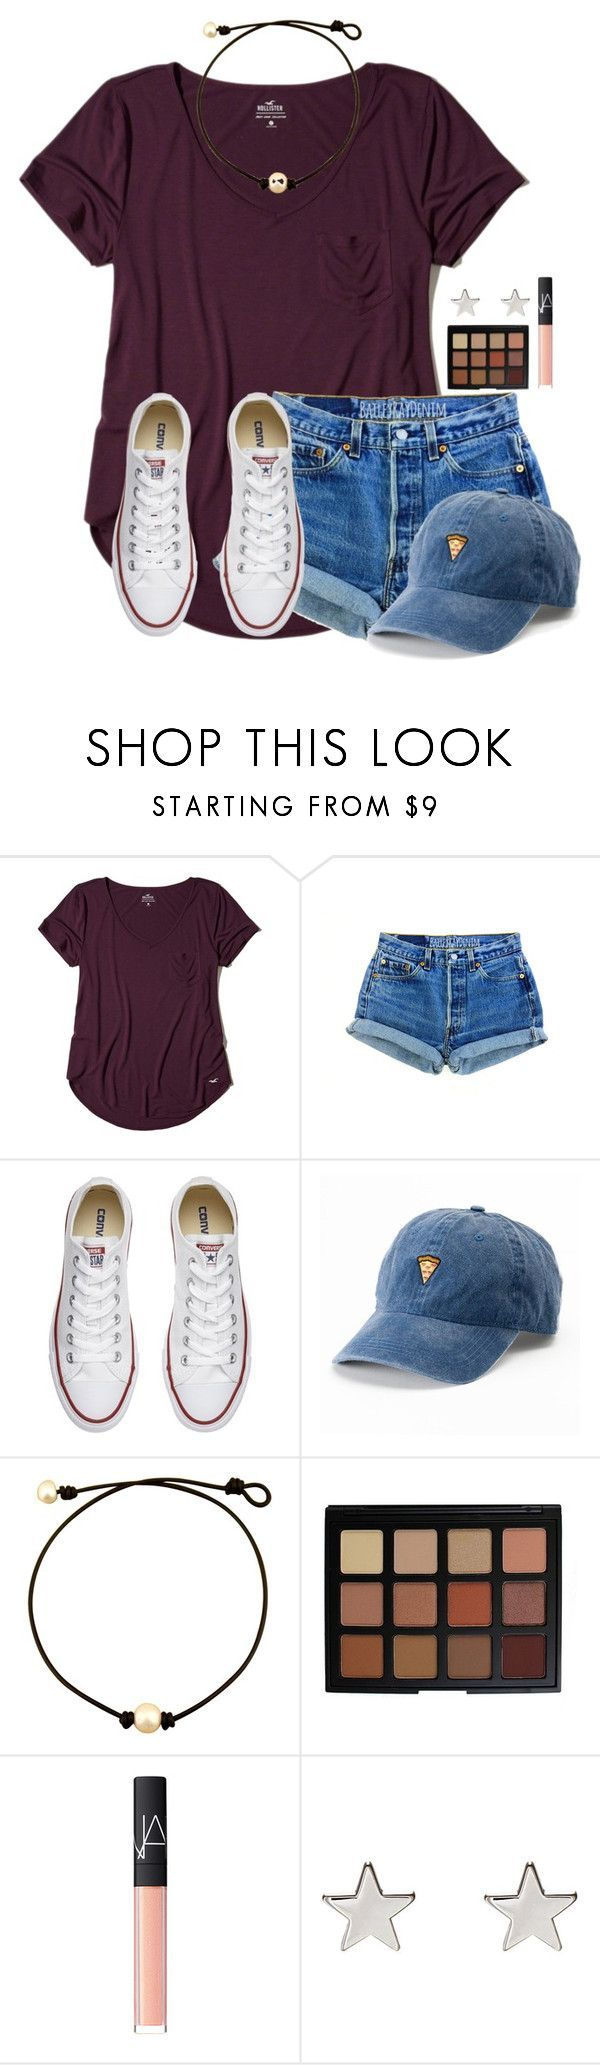 """~simplicity~"" by victoriaann34 ❤ liked on Polyvore featuring Hollister Co., Converse, SO, Morphe, NARS Cosmetics and Jennifer Meyer Jewelry"